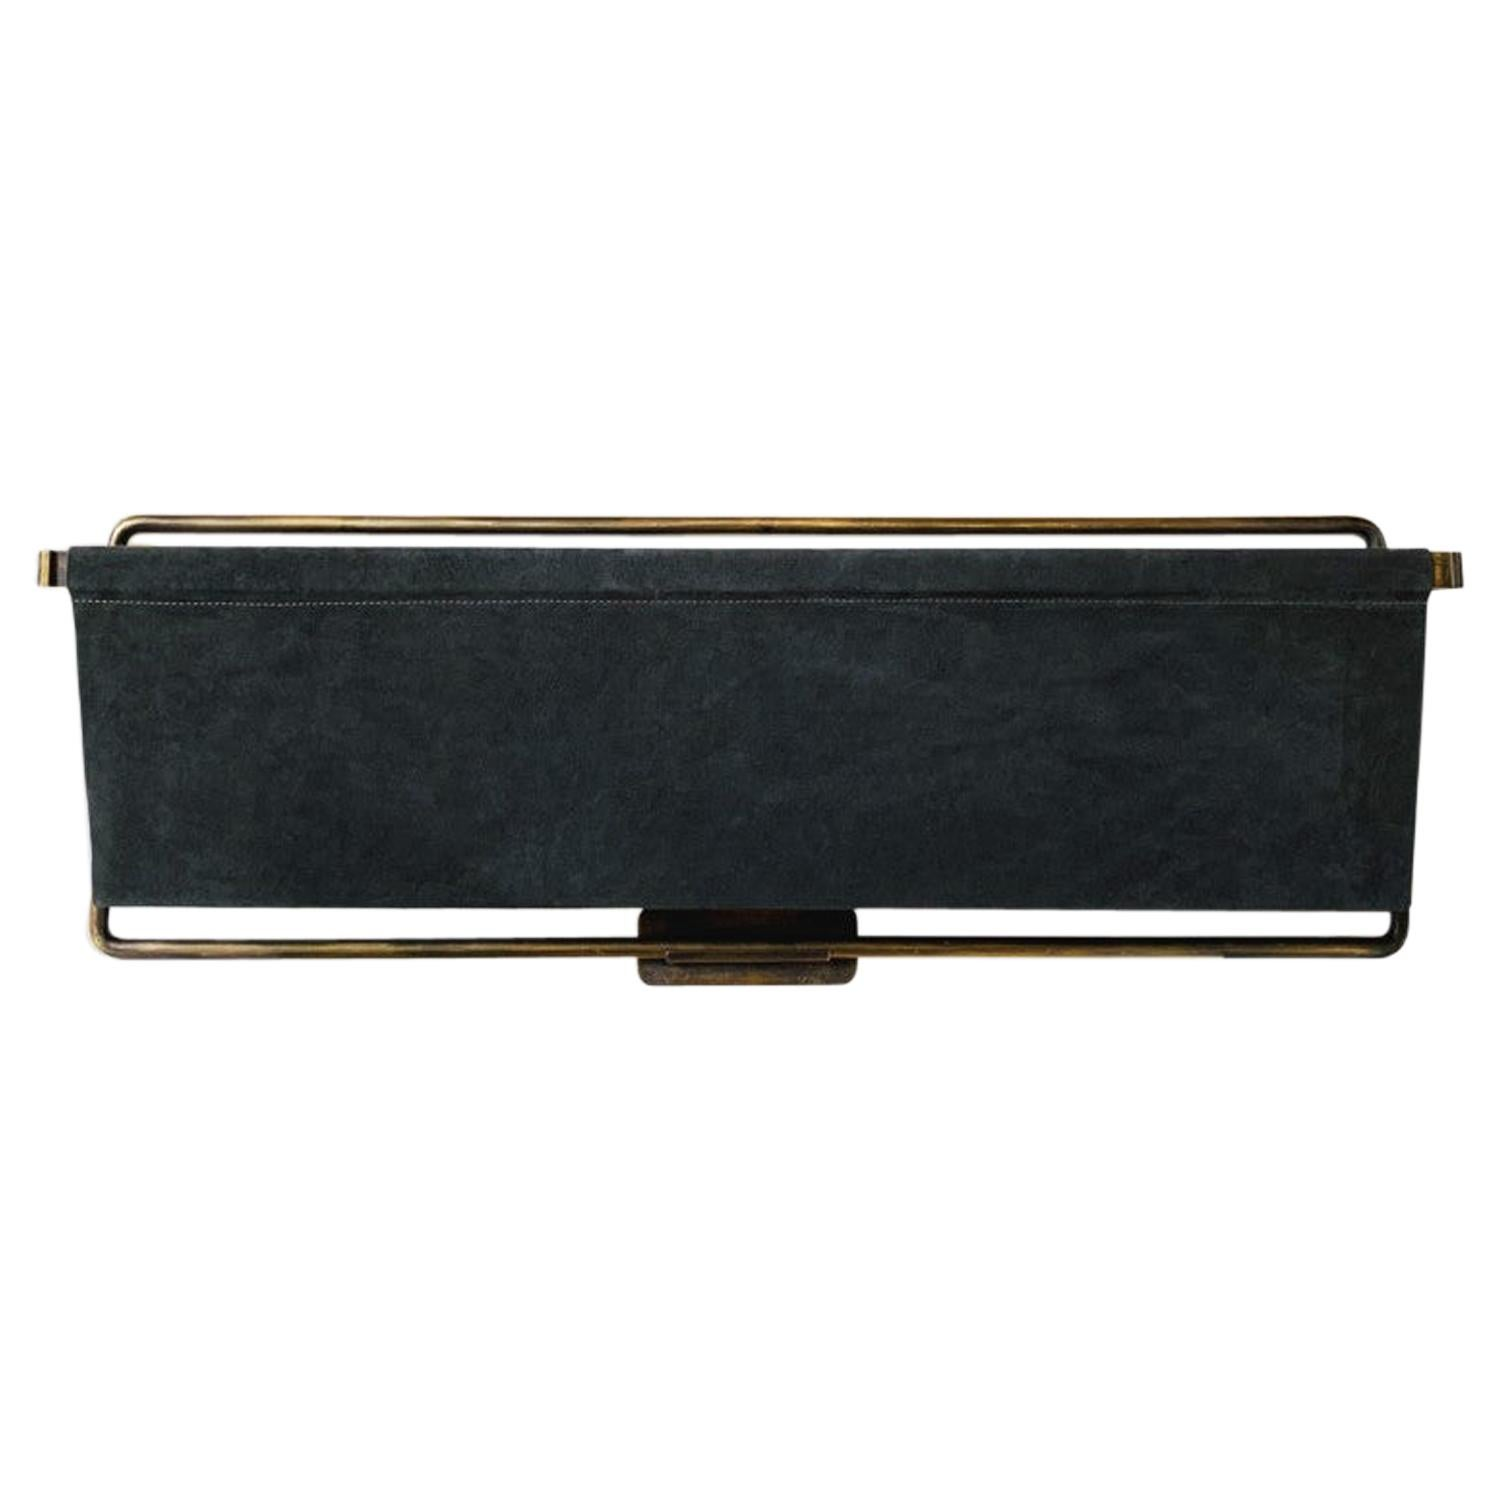 Leather Magazine Rack by Charlotte Besson-Oberlin